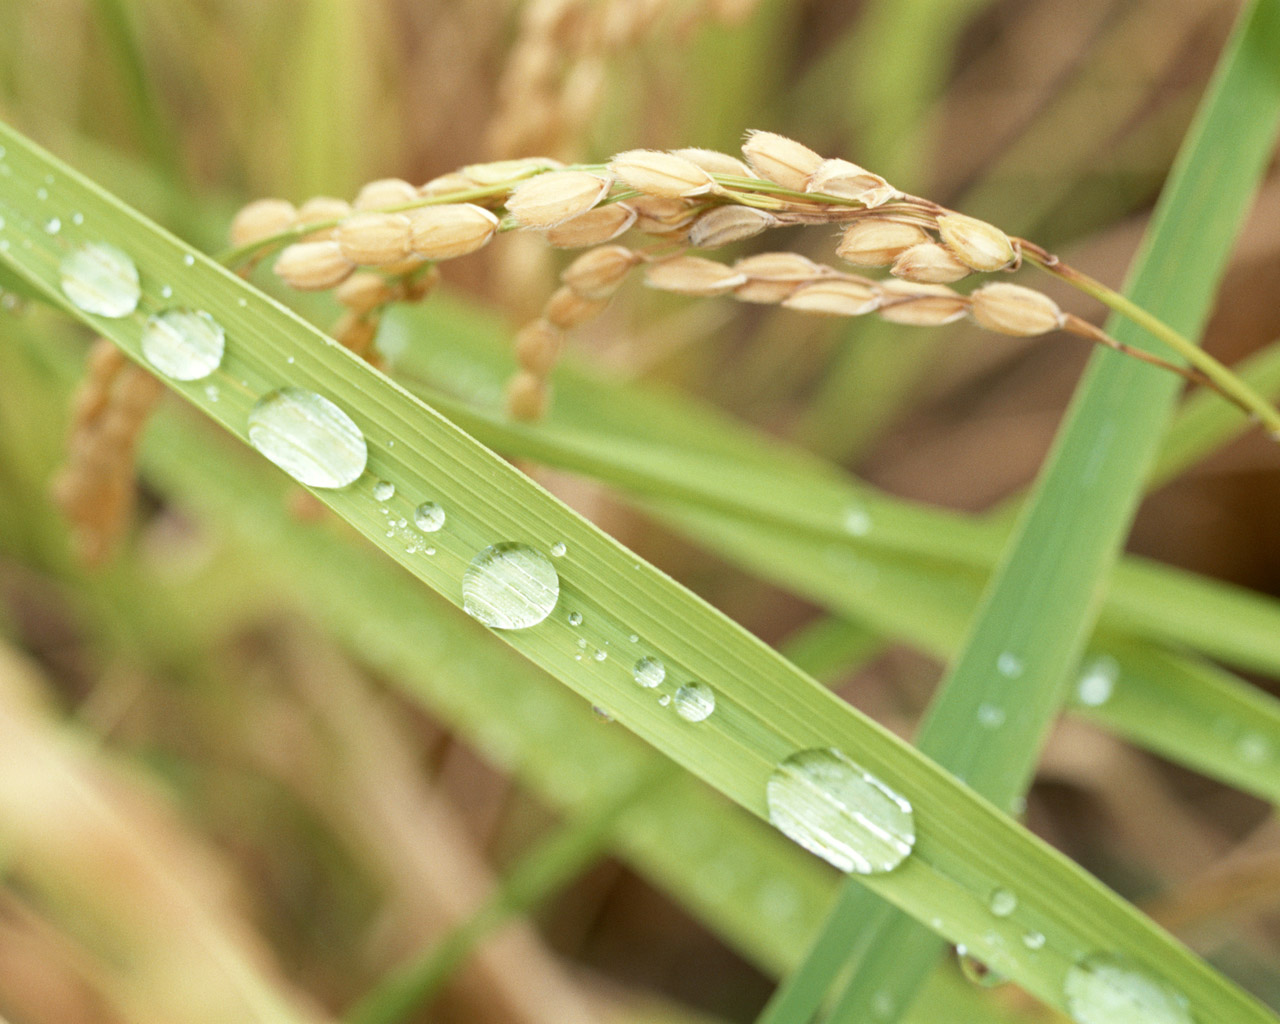 click to free download the wallpaper--Nature Landscape Image, Wheats and Green Plants, Waterdrops All Over, Morning Scene